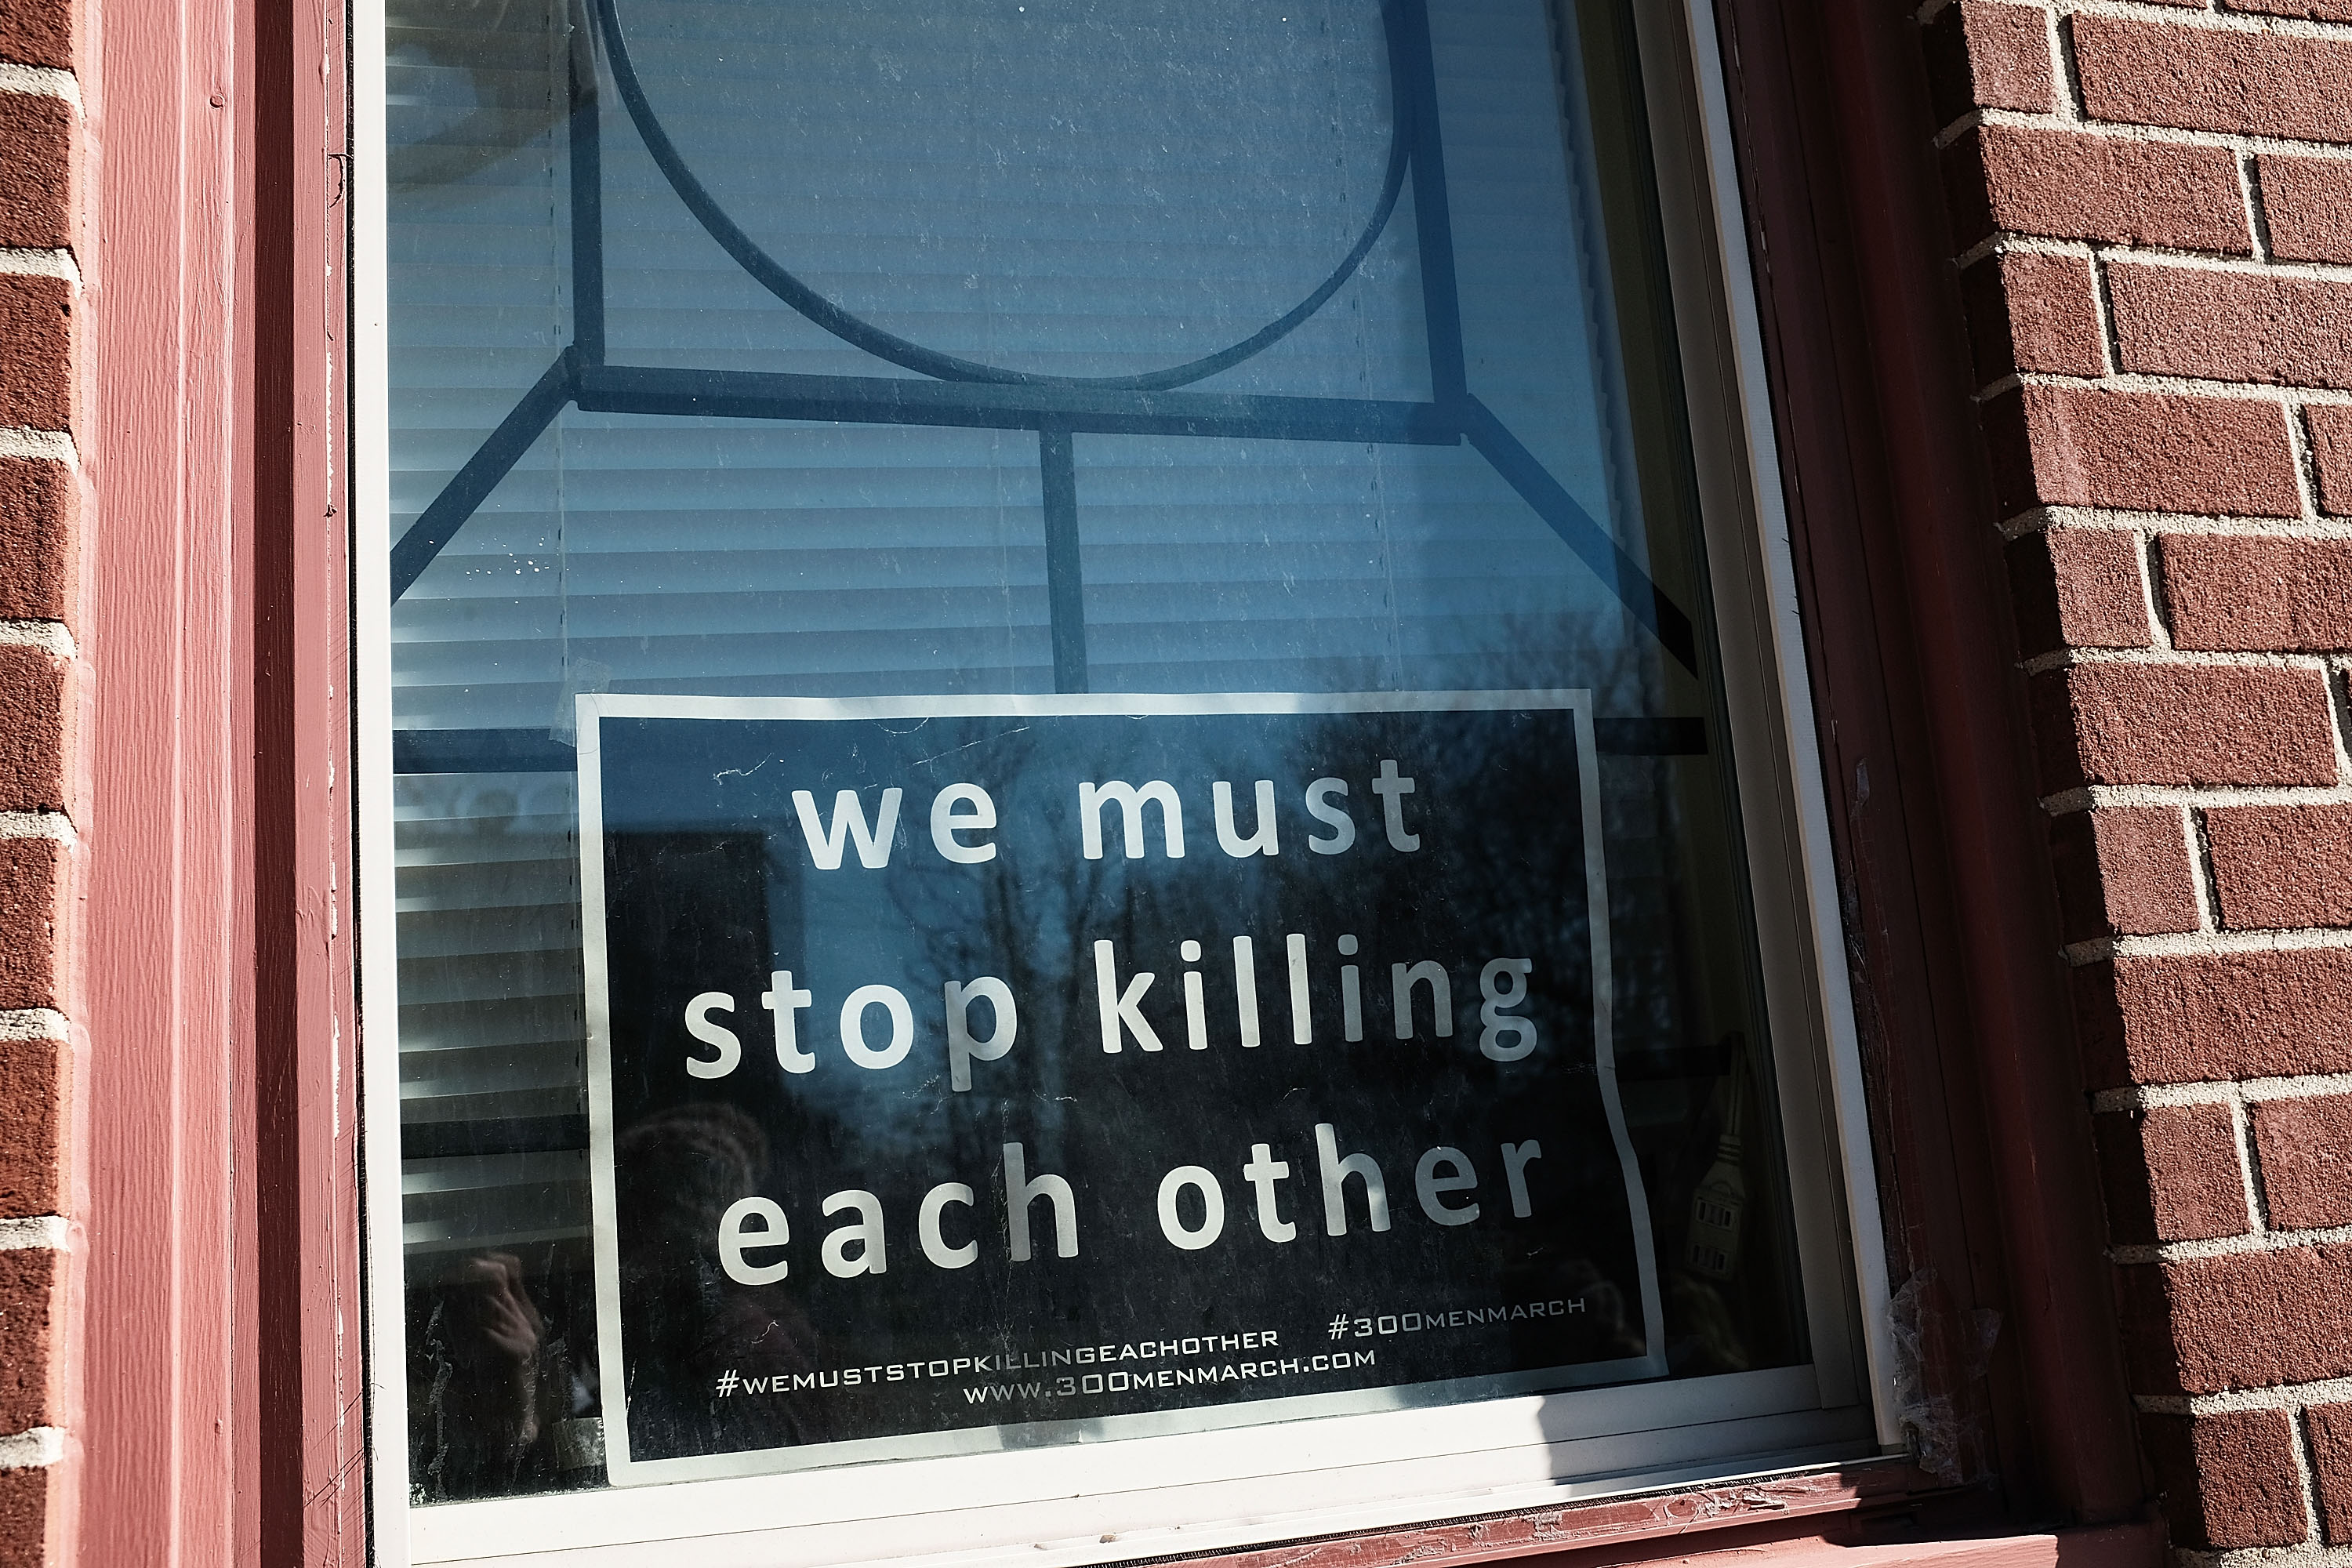 BALTIMORE, MD - FEBRUARY 03: A sign to end violence sits in a window in a neighborhood with a high murder rate on February 3, 2018 in Baltimore, Maryland. Baltimore, one of the poorest major cities in the United States, experienced 341 homicides last year, the highest per-capita rate on record for the city. The third citywide Ceasefire event began on Friday, with organizers and community members calling for peace for a 72-hour period and holding numerous events, including peace walks, movie screenings and a youth basketball tournament among other gatherings. (Photo by Spencer Platt/Getty Images)